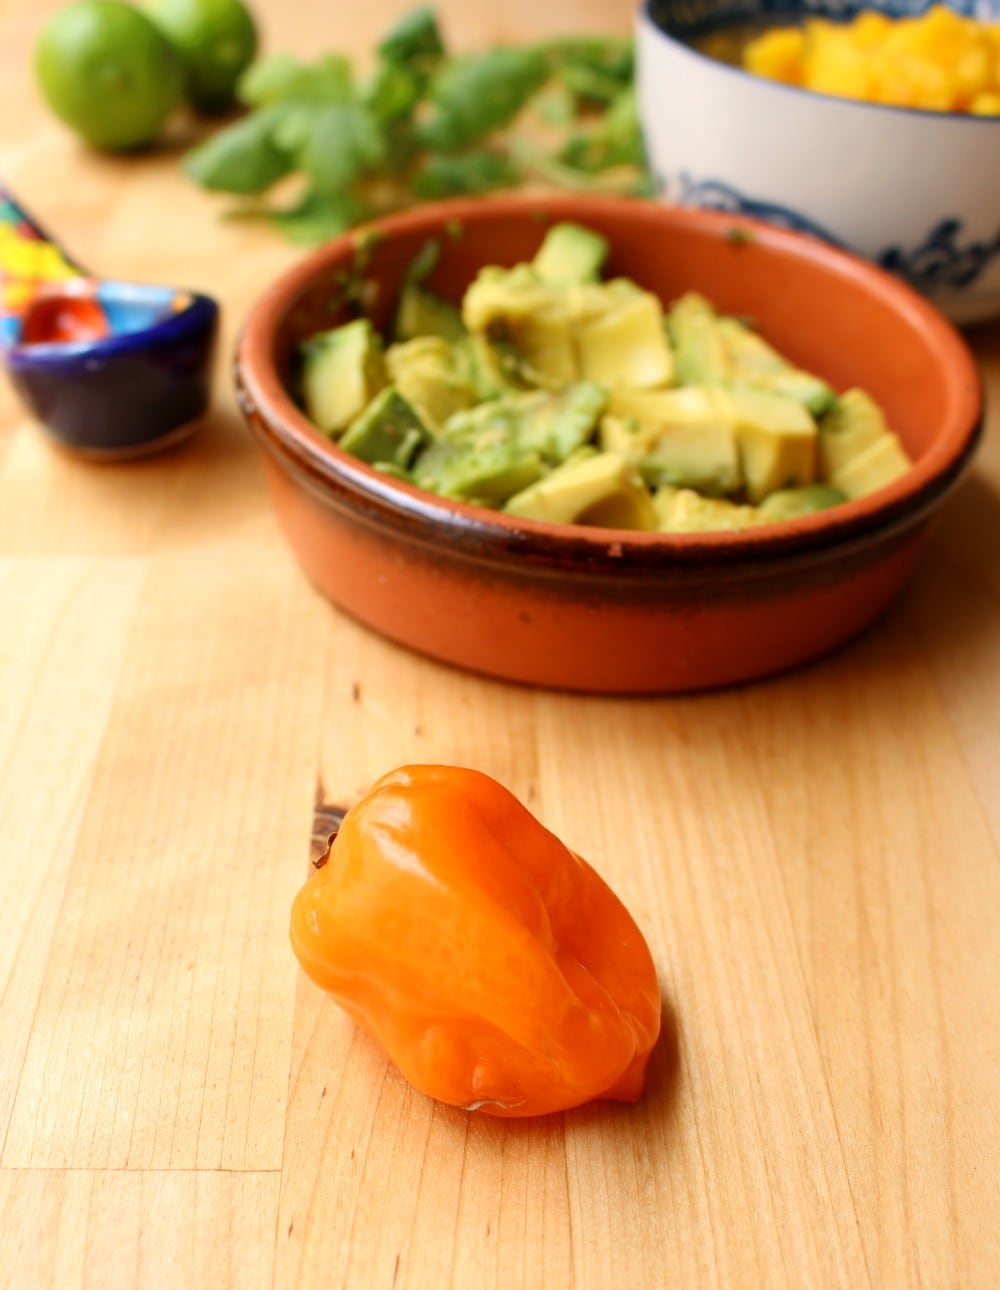 A habanero pepper in front of the ingredients for Avocado Mango Salsa